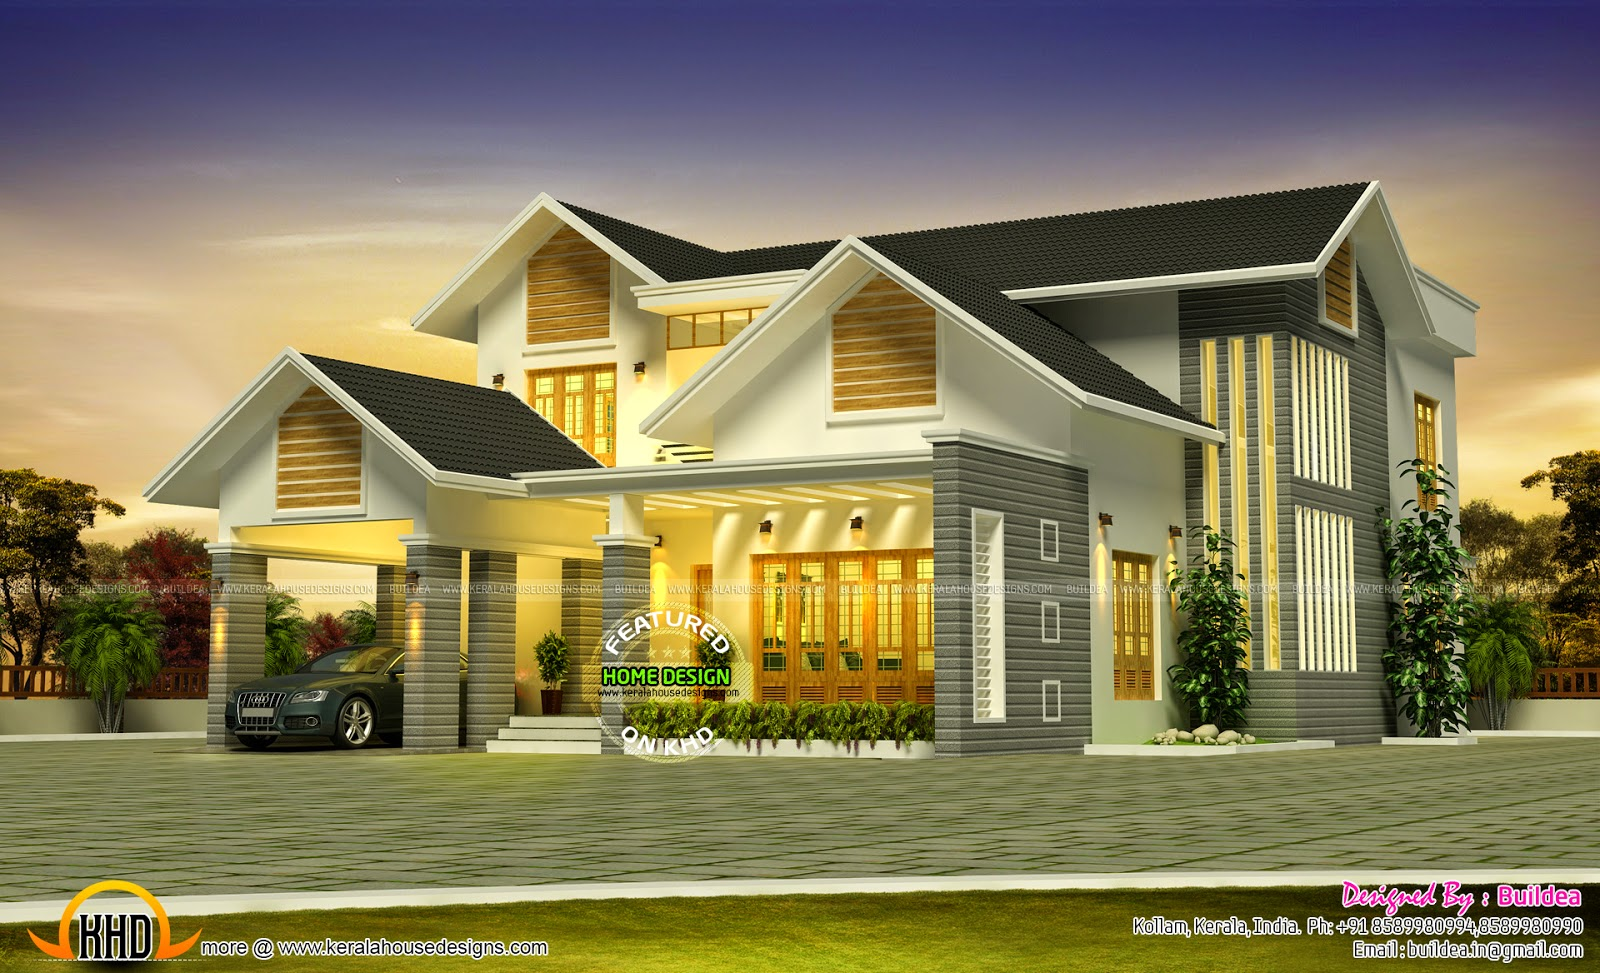 Grand house design kerala home design and floor plans for In home design